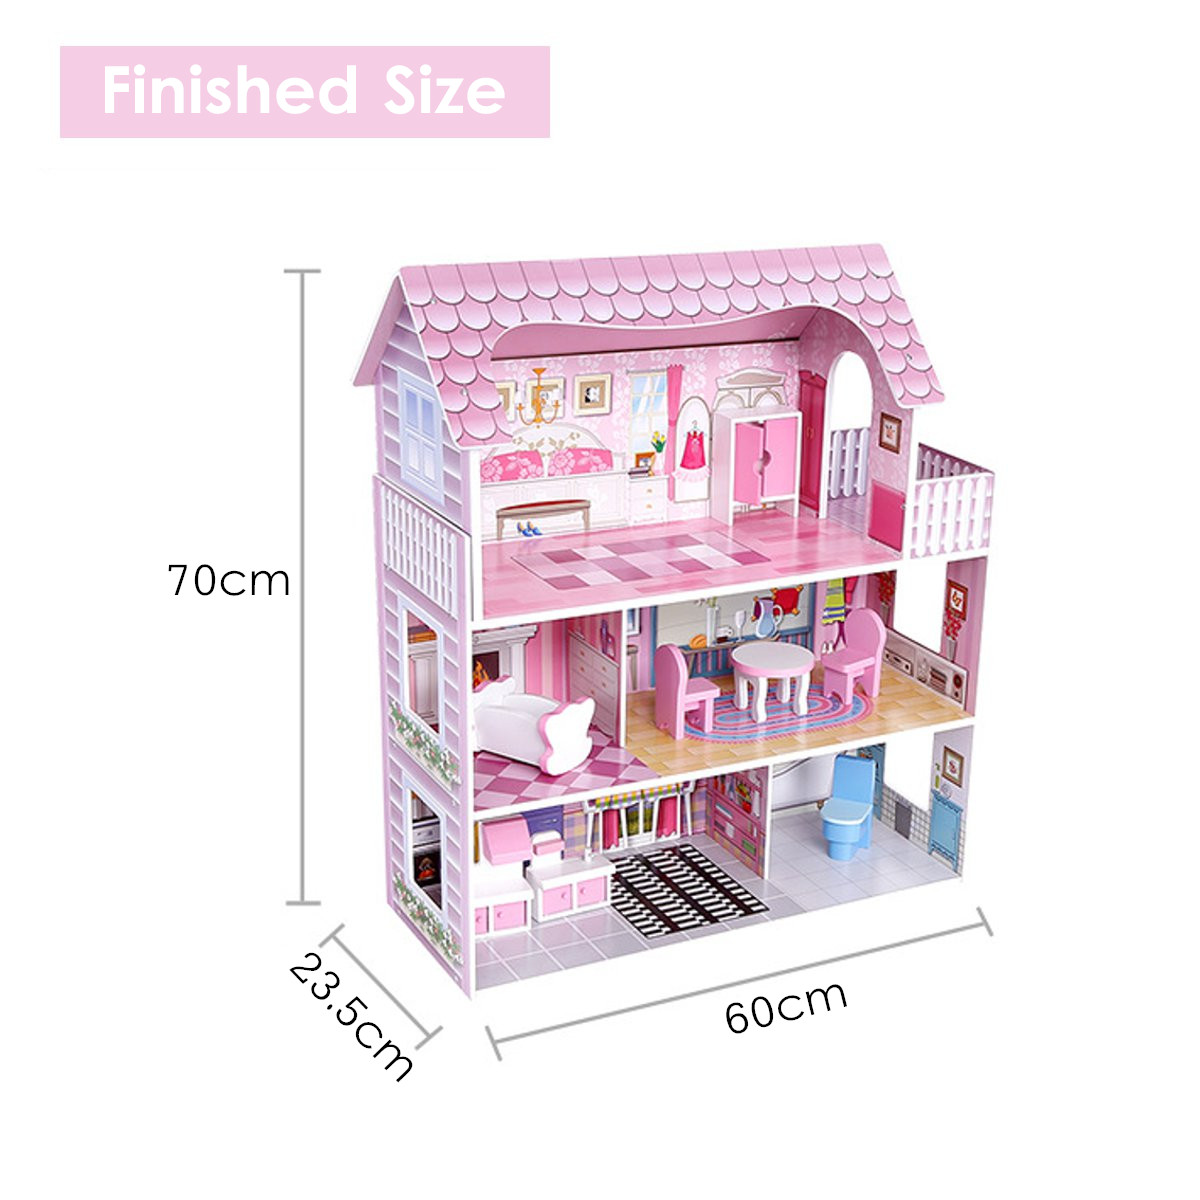 Wooden Doll House 3 Level Girls Pretend Play Furniture Porch Sink Crib Toilet Chair Furniture Set Large Toy Pink Princess Gift